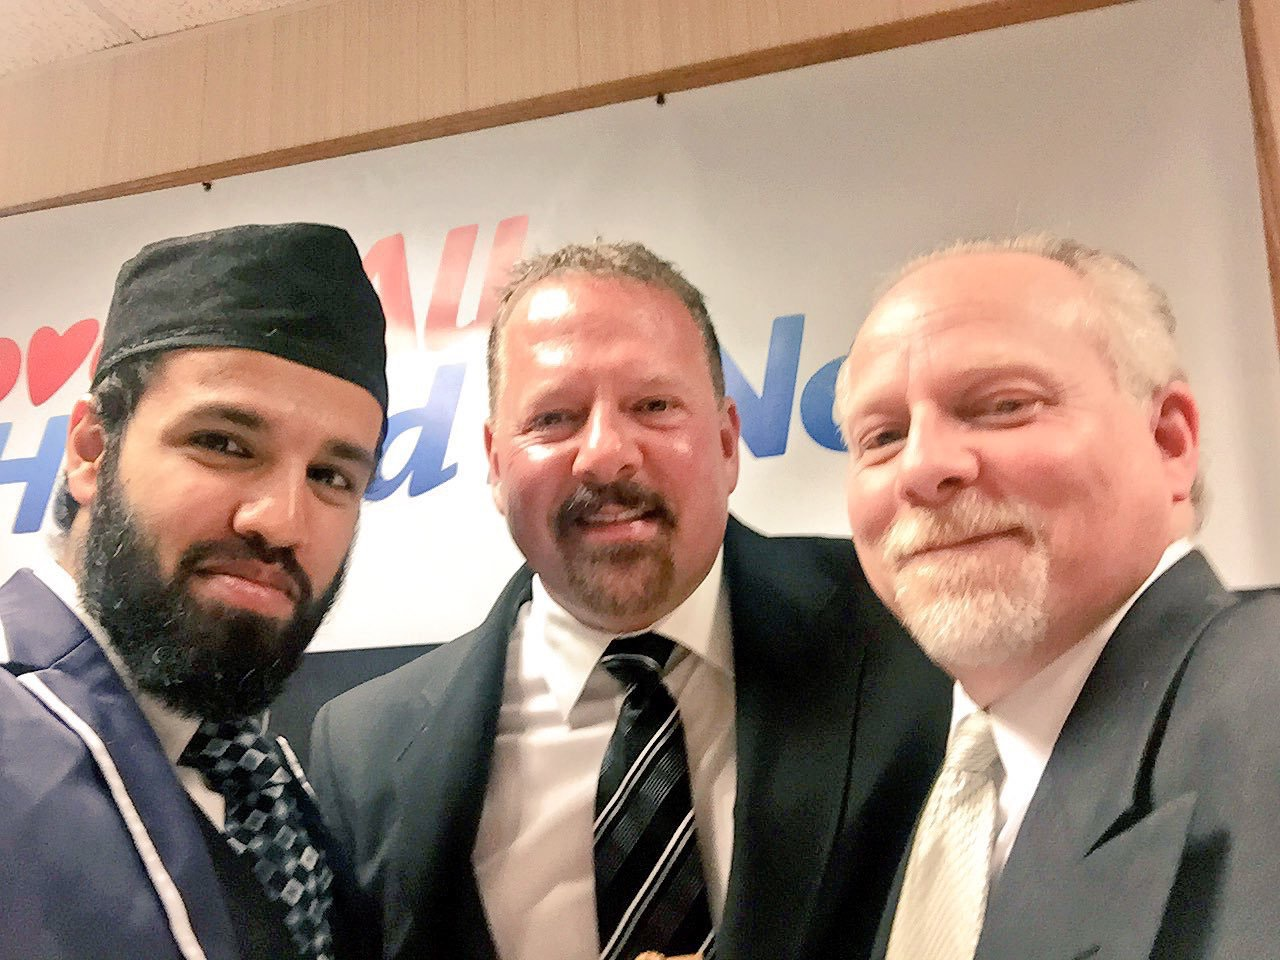 CT Muslims and ex-Islamophobe unite to counter extremism